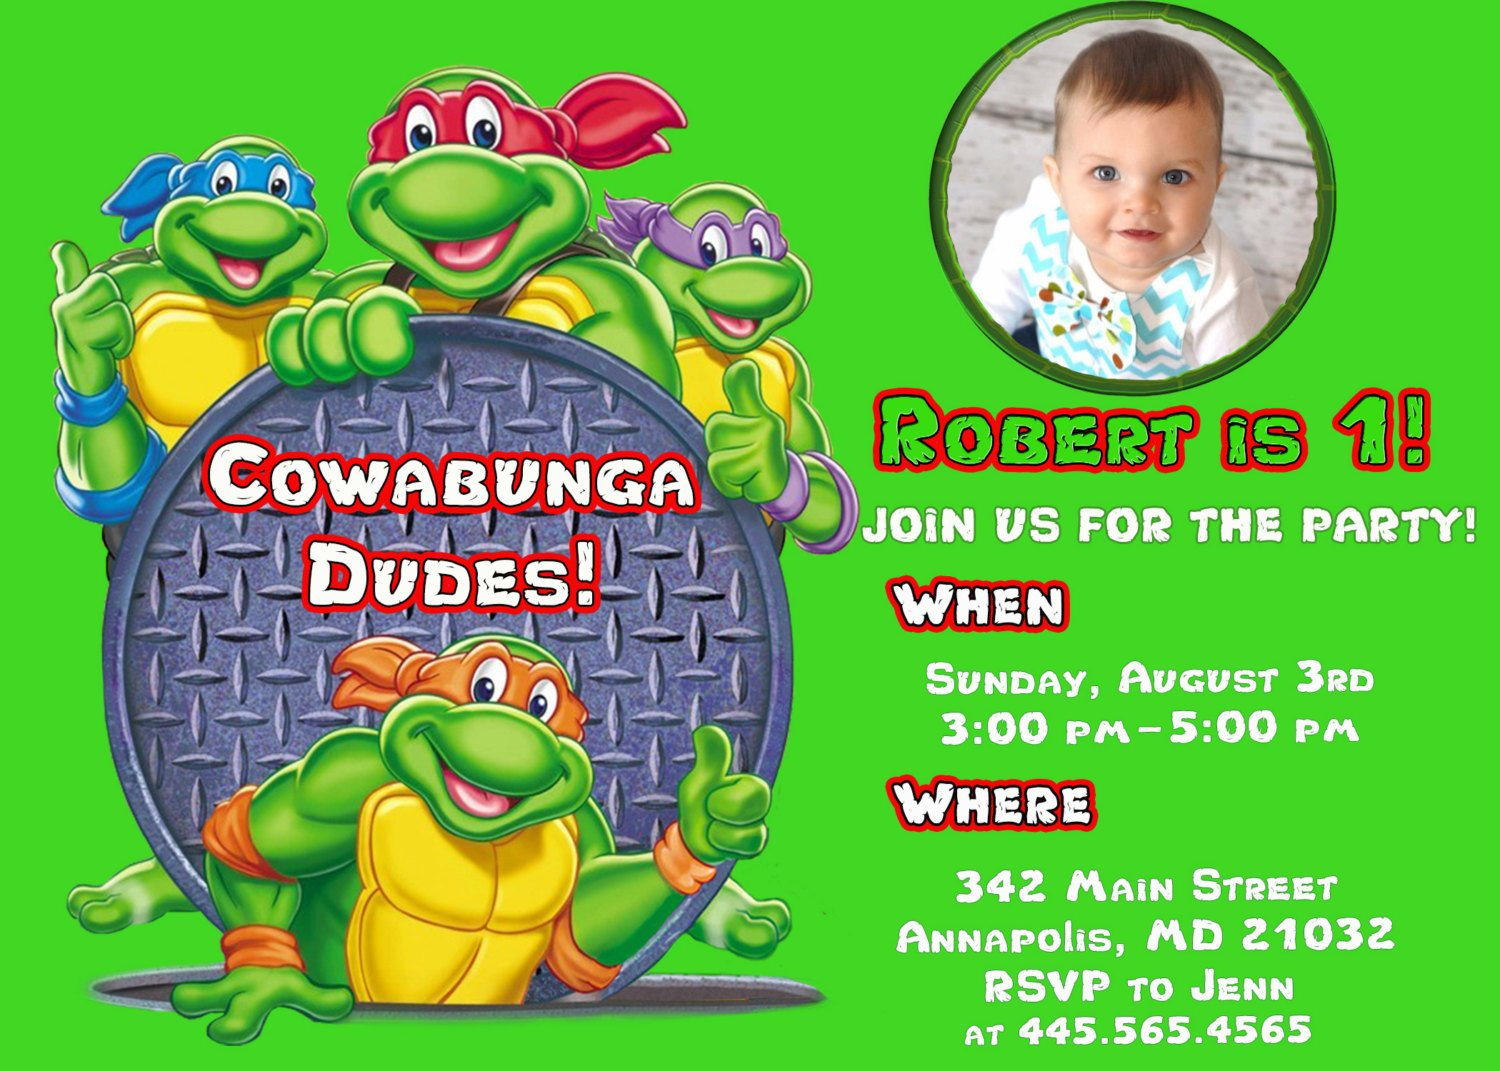 ninja turtle birthday party invitations  drevio invitations design, Party invitations